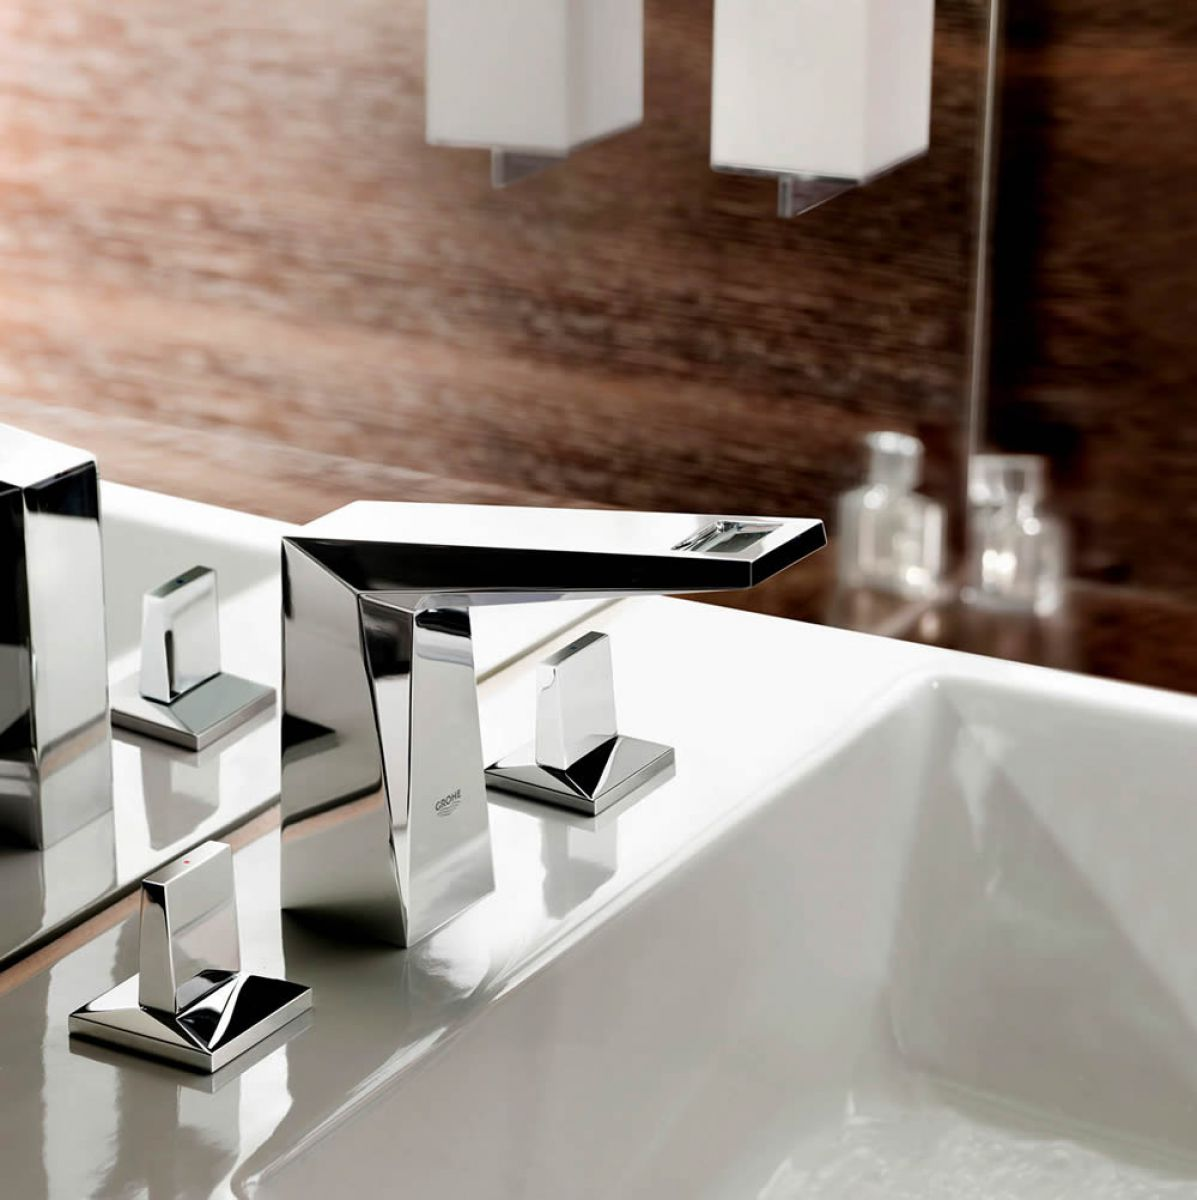 Grohe Allure Brilliant 3 Hole Basin Mixer Tap Uk Bathrooms